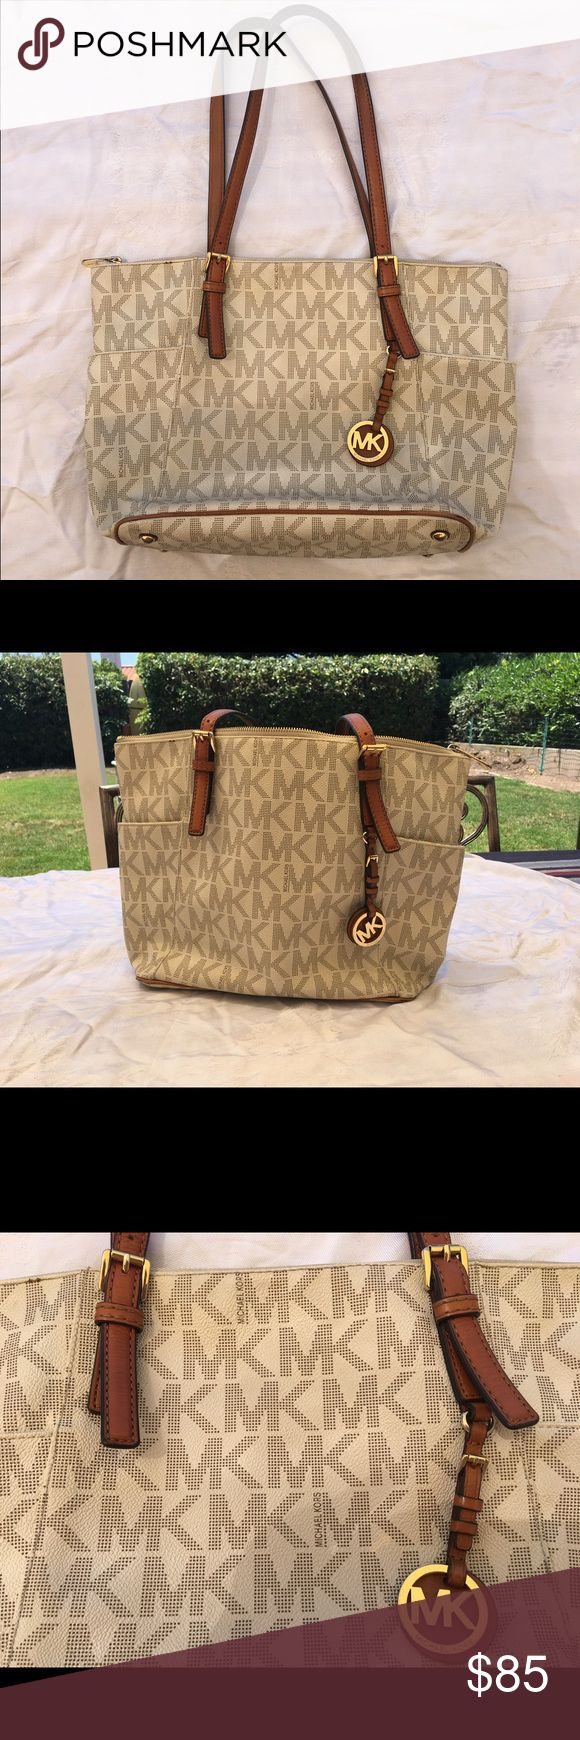 MICHAEL Michael Kors Jet Set Logo Tote MICHAEL Michael Kors Jet Set Logo Tote! Really great condition. Some very minimal wear on shoulder strap, edges of bag, for example. MICHAEL Michael Kors Bags